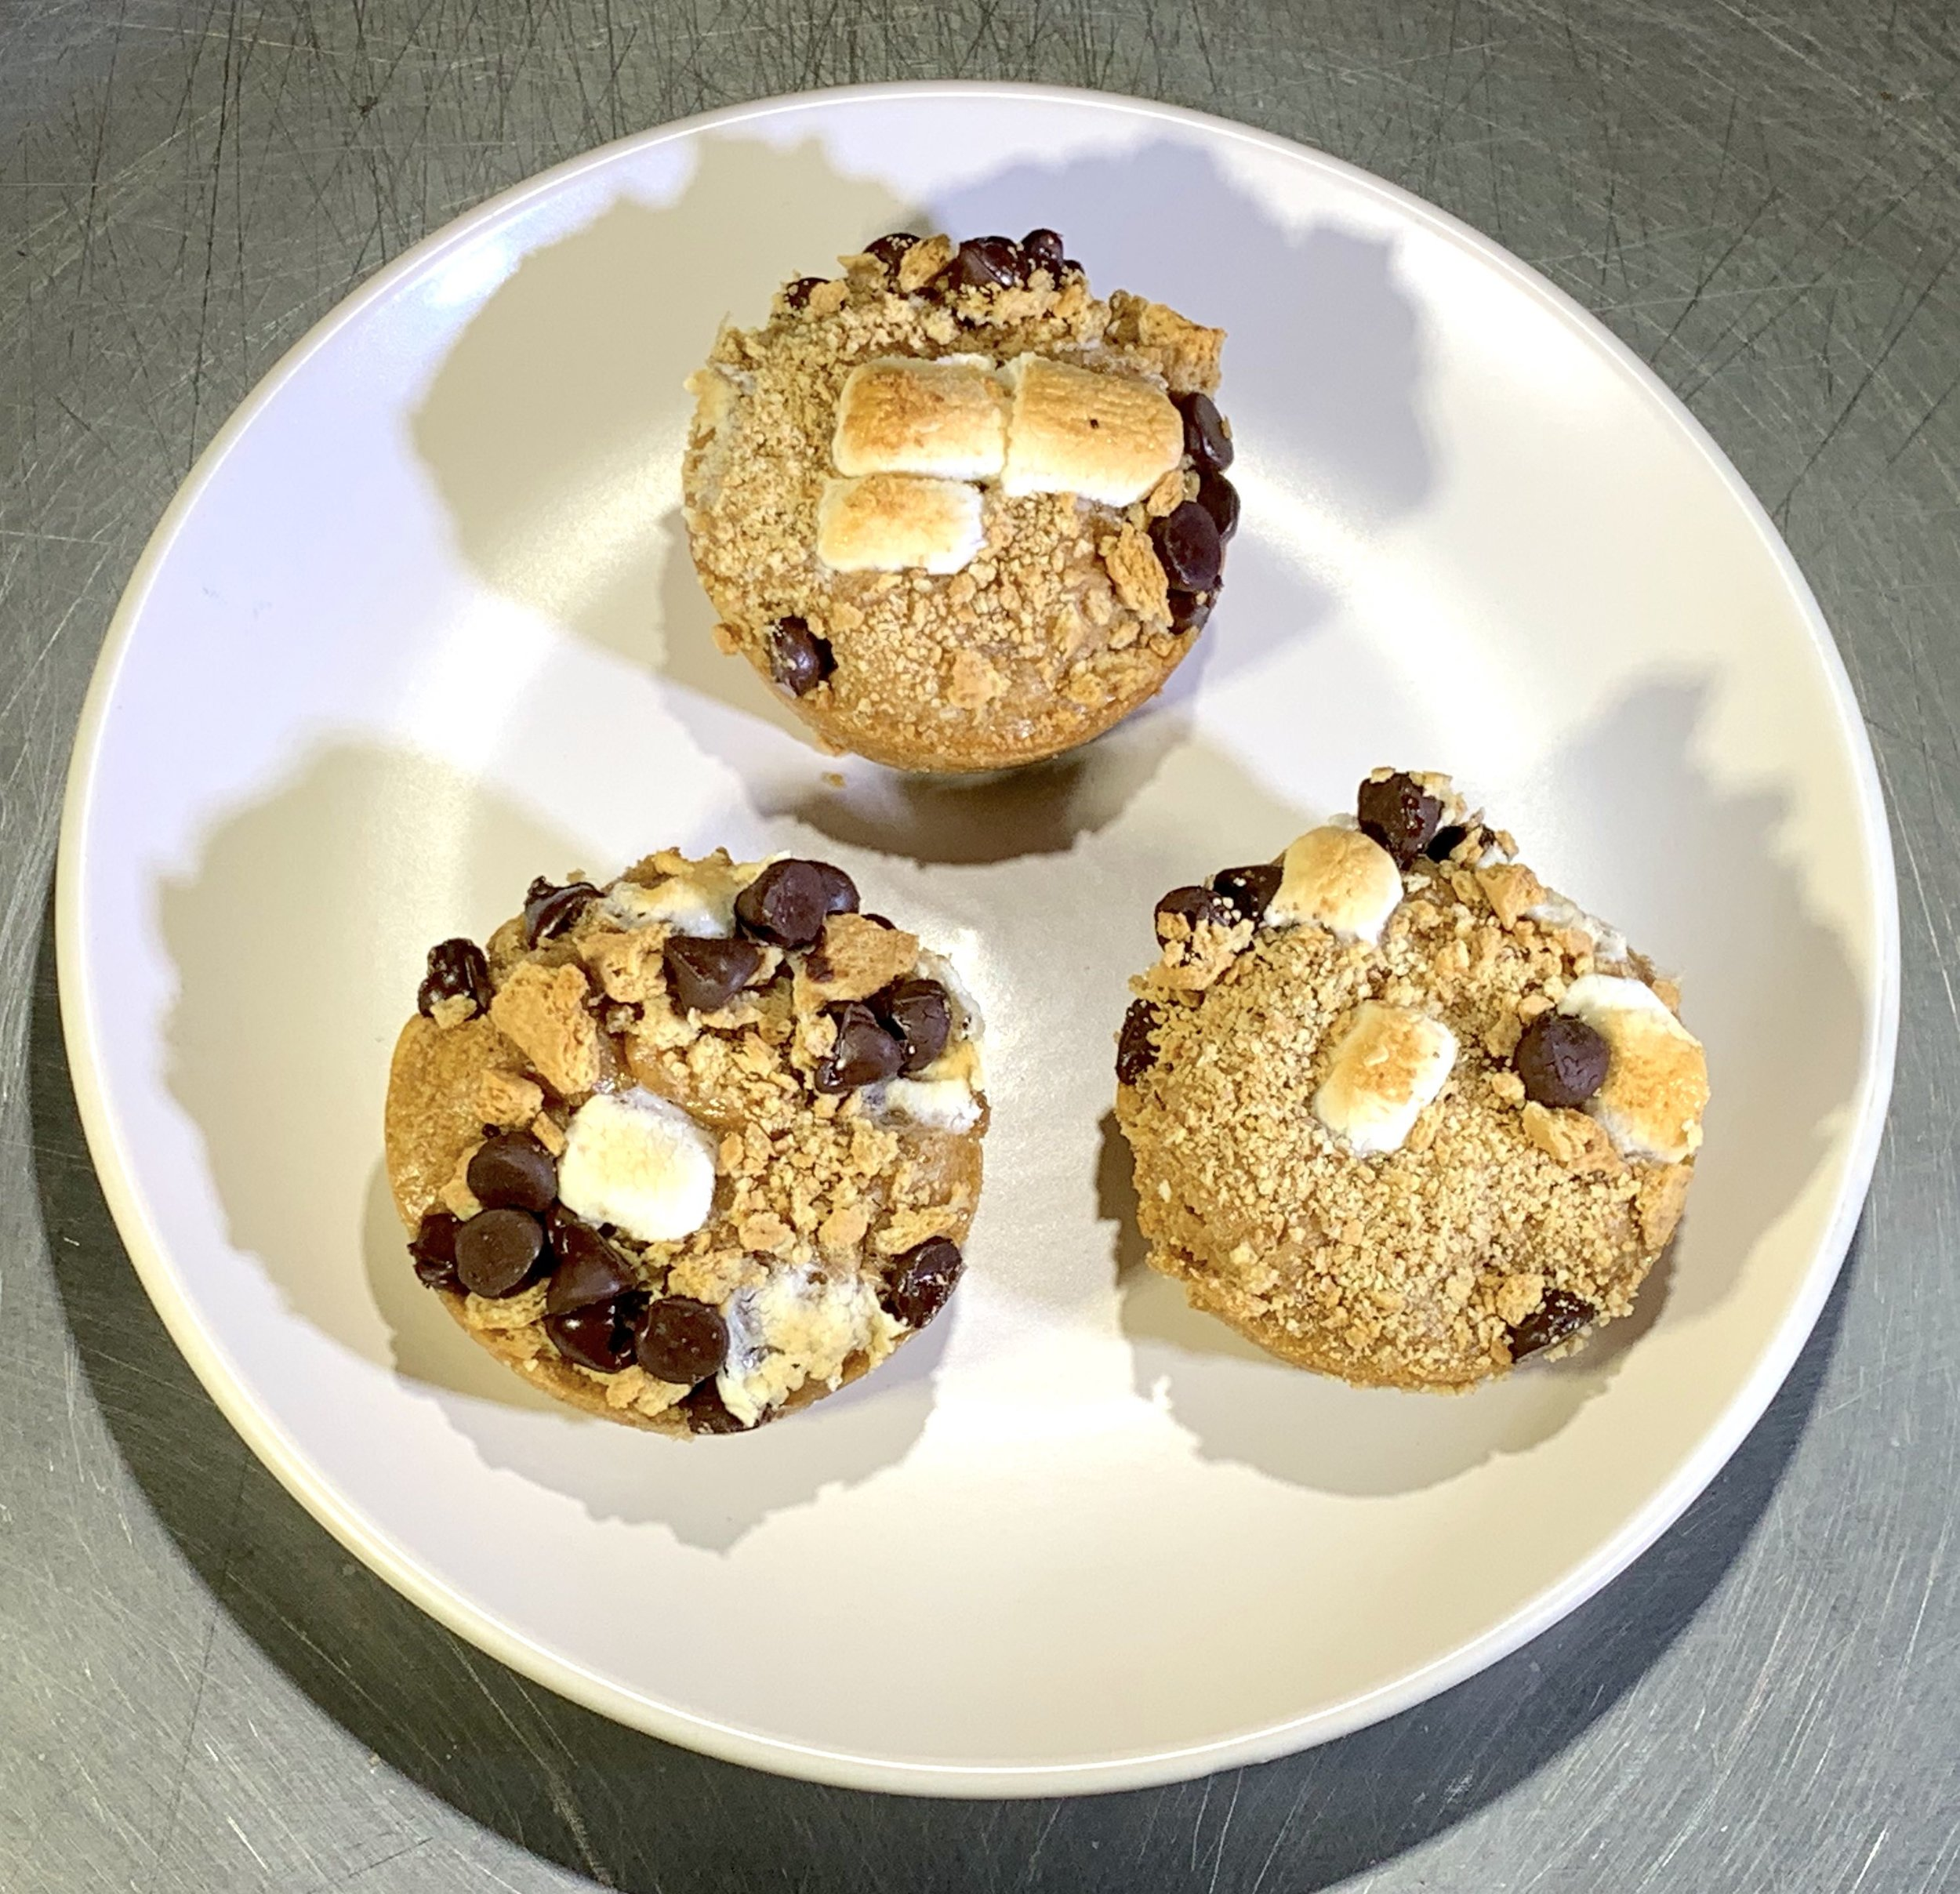 S'mores Protein Muffins - Calories: 411 Fat: 27 gramsCarbs: 21 grams Protein: 21 gramsContains: peanut, eggs, dairy